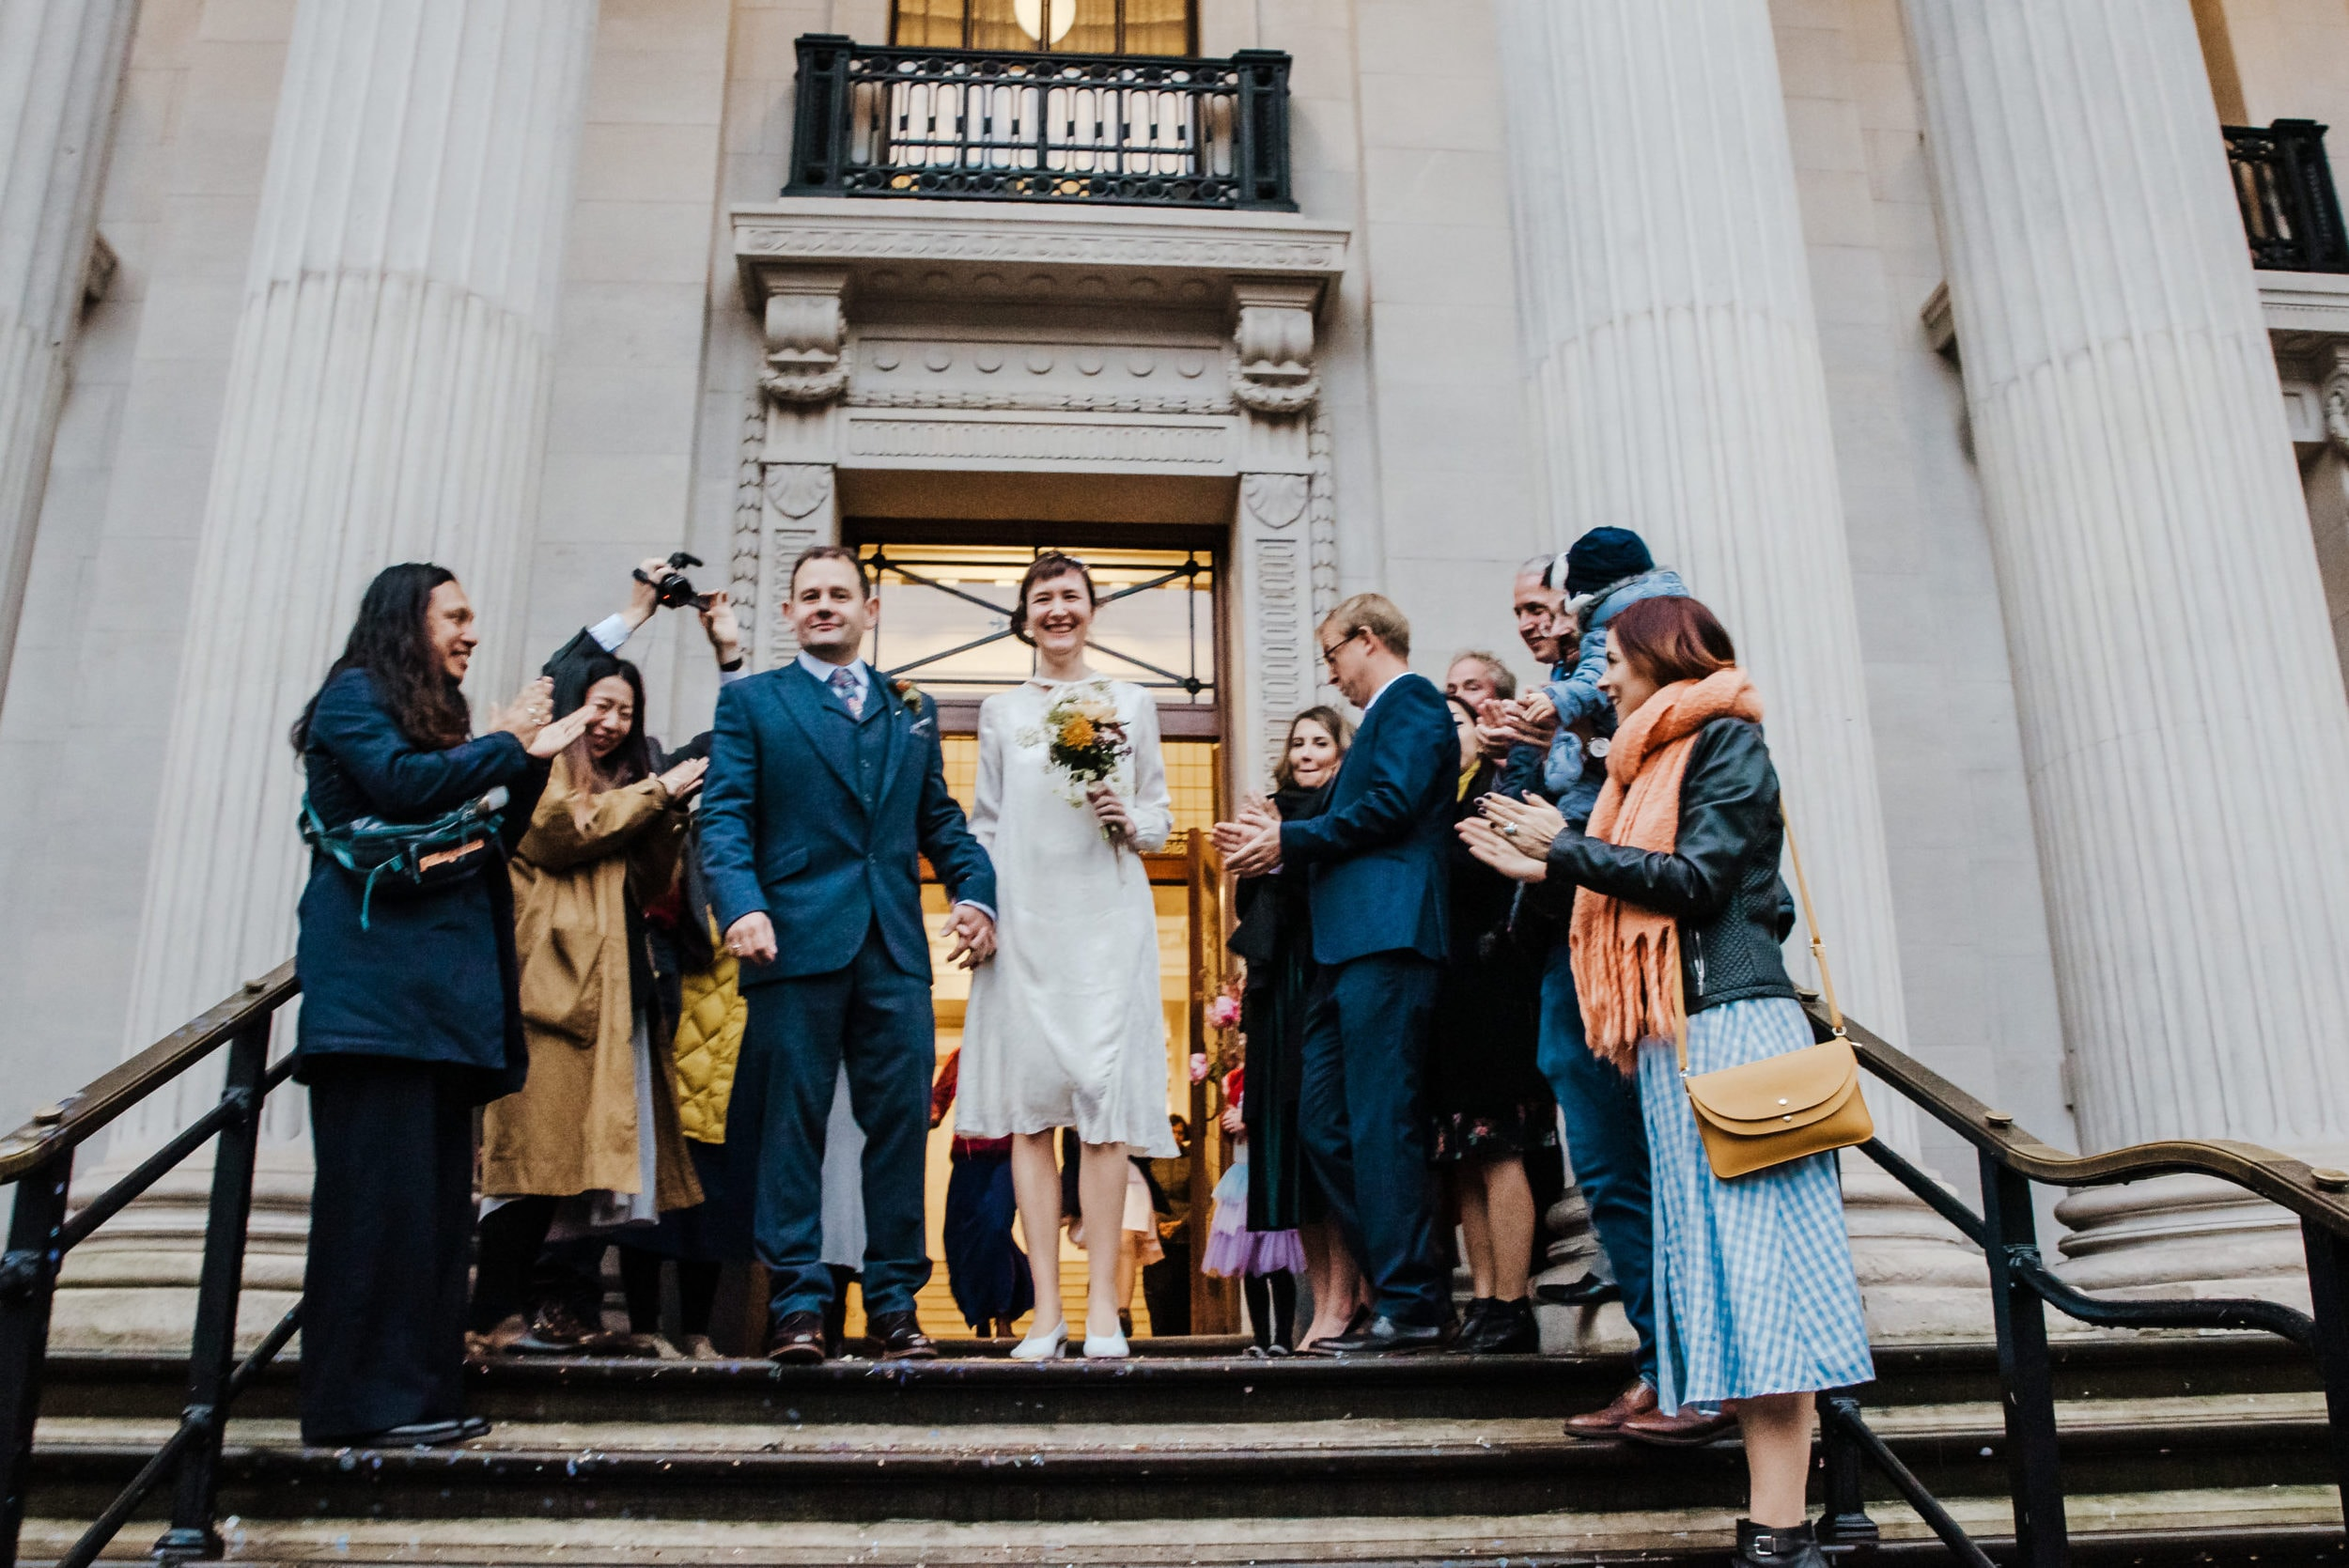 Katya in silk vintage weddign dress, Brett in blue suit at the Old Marylebone registry office London confetti throwing at the entrance